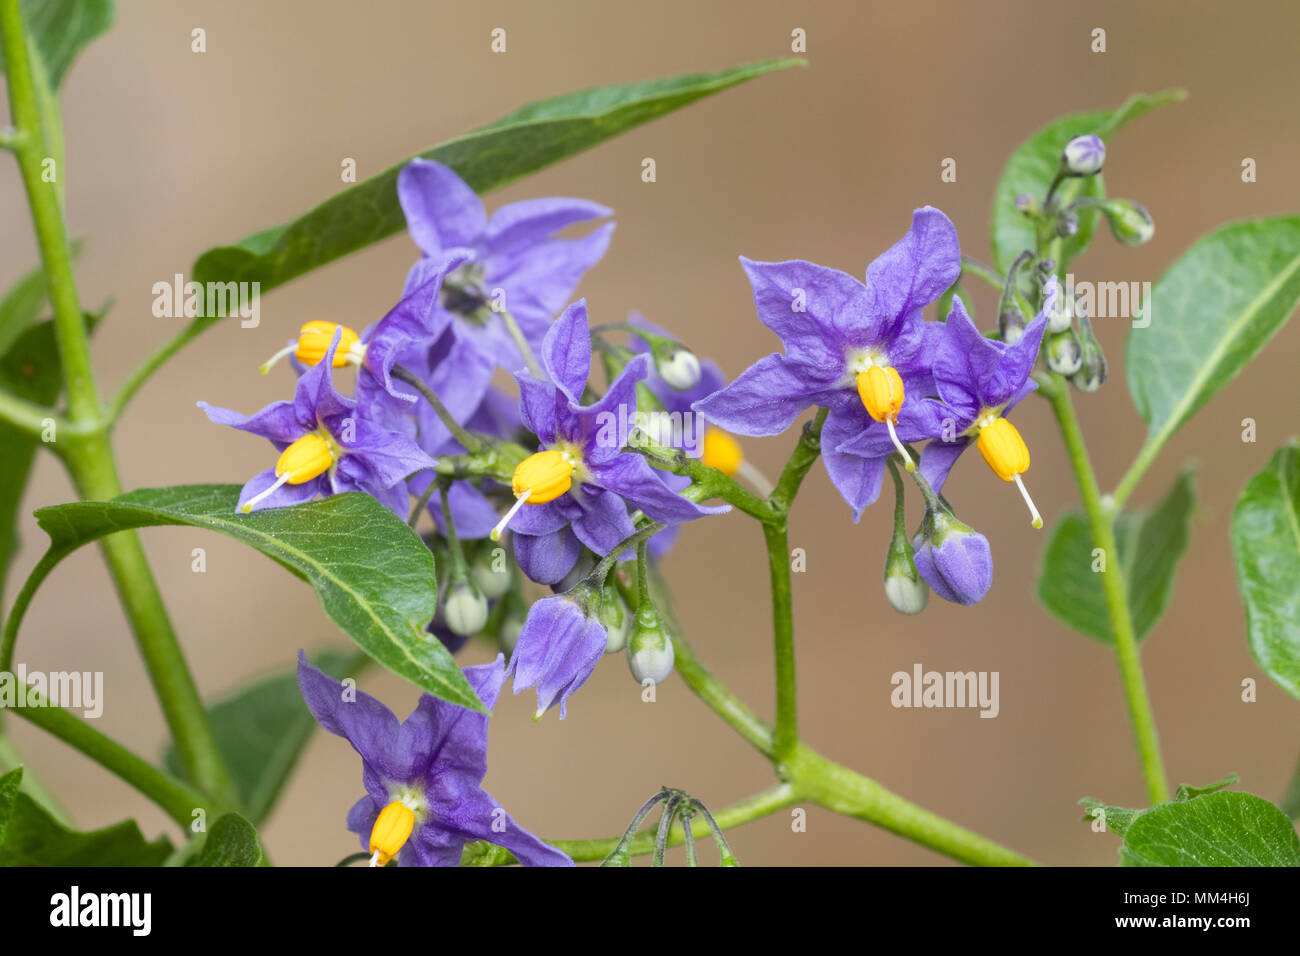 Blue-violet flowers of the hardy, semi evergeen potato vine, Solanum crispum 'Glasnevin' - Stock Image